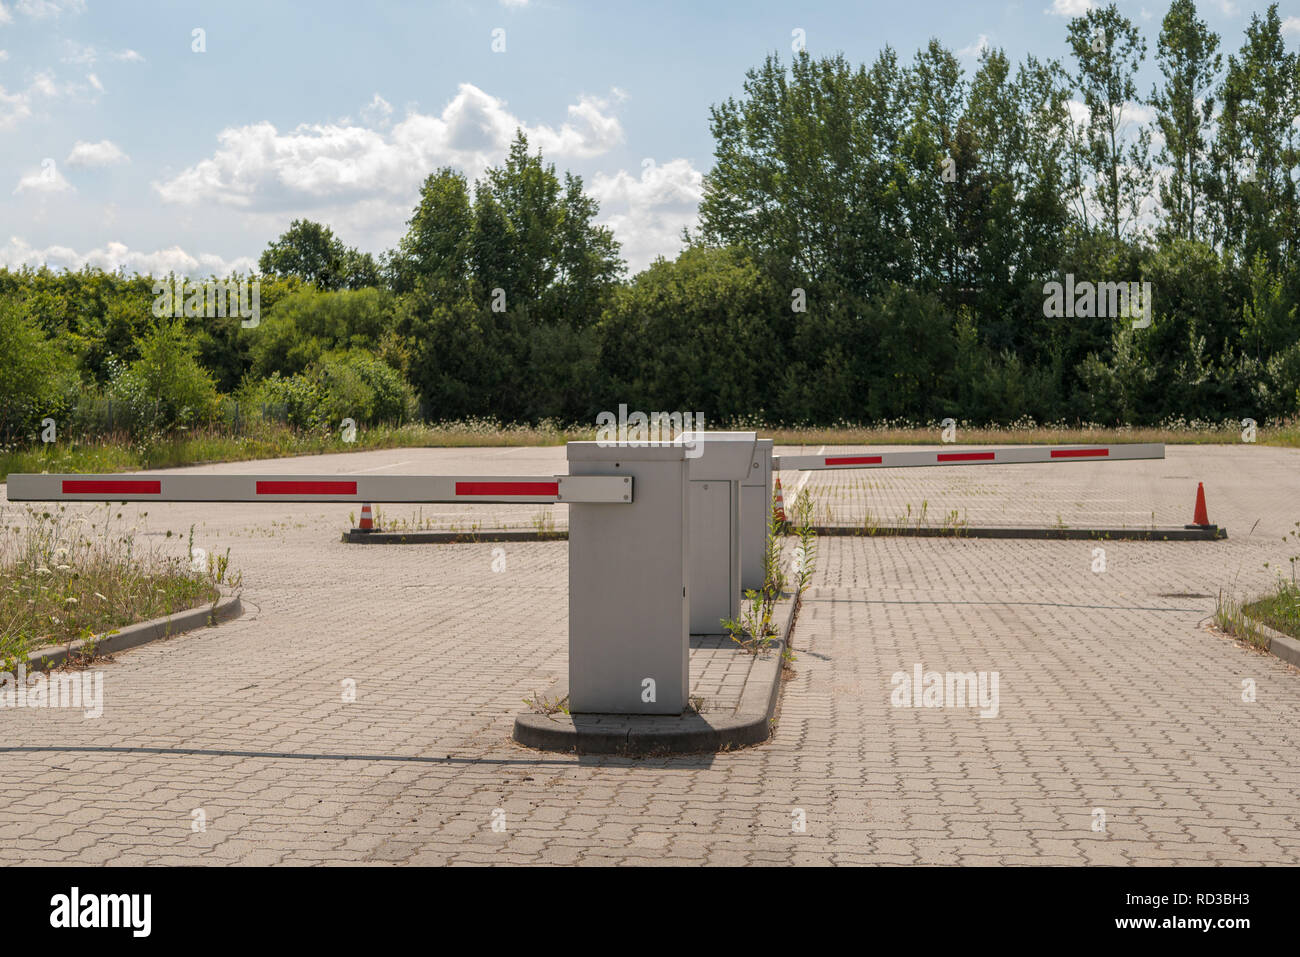 Parking entrance and exit blocked by barriers - Stock Image